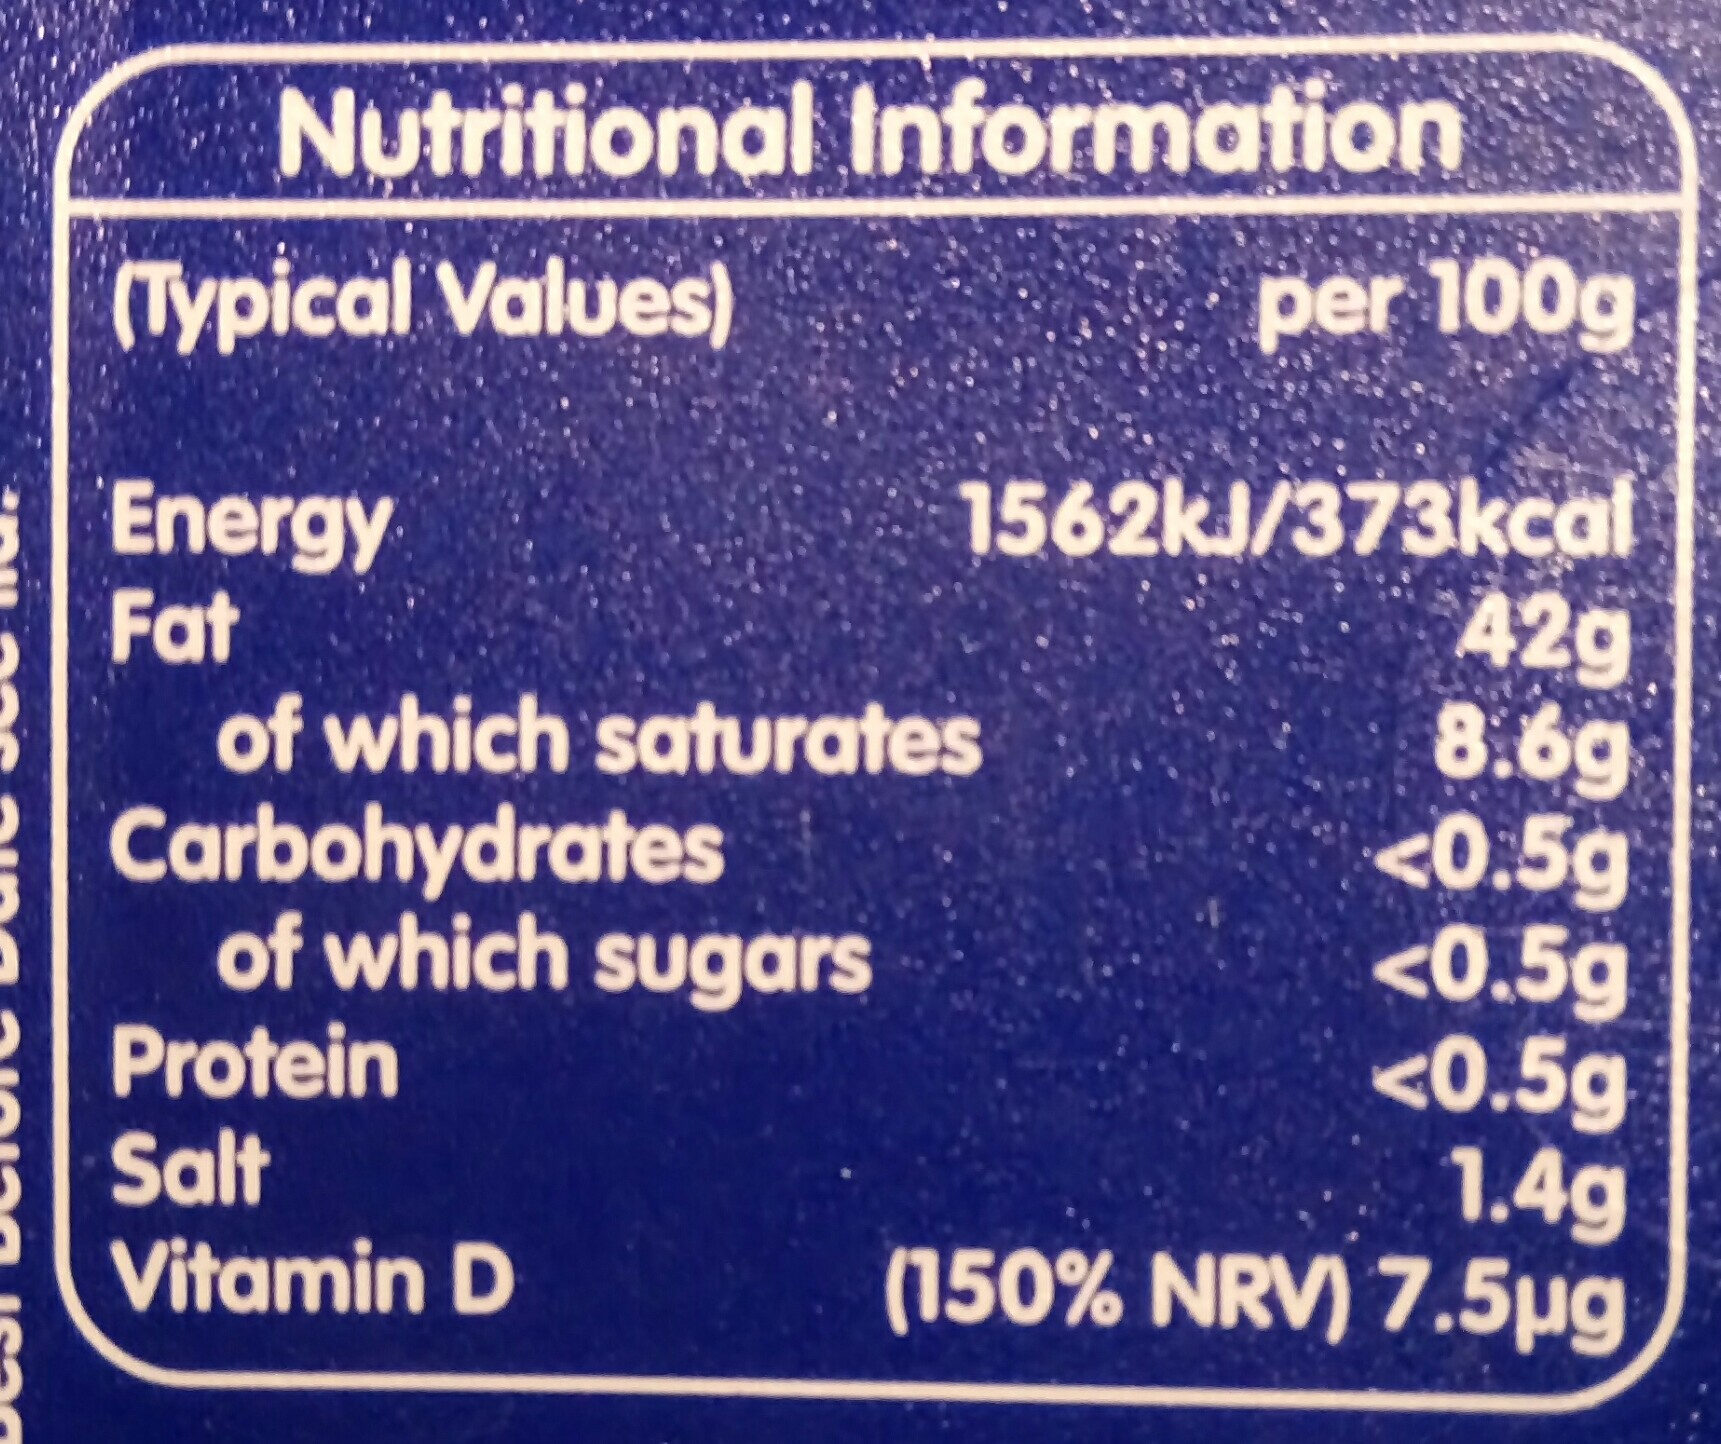 I can't believe it's so good... - Nutrition facts